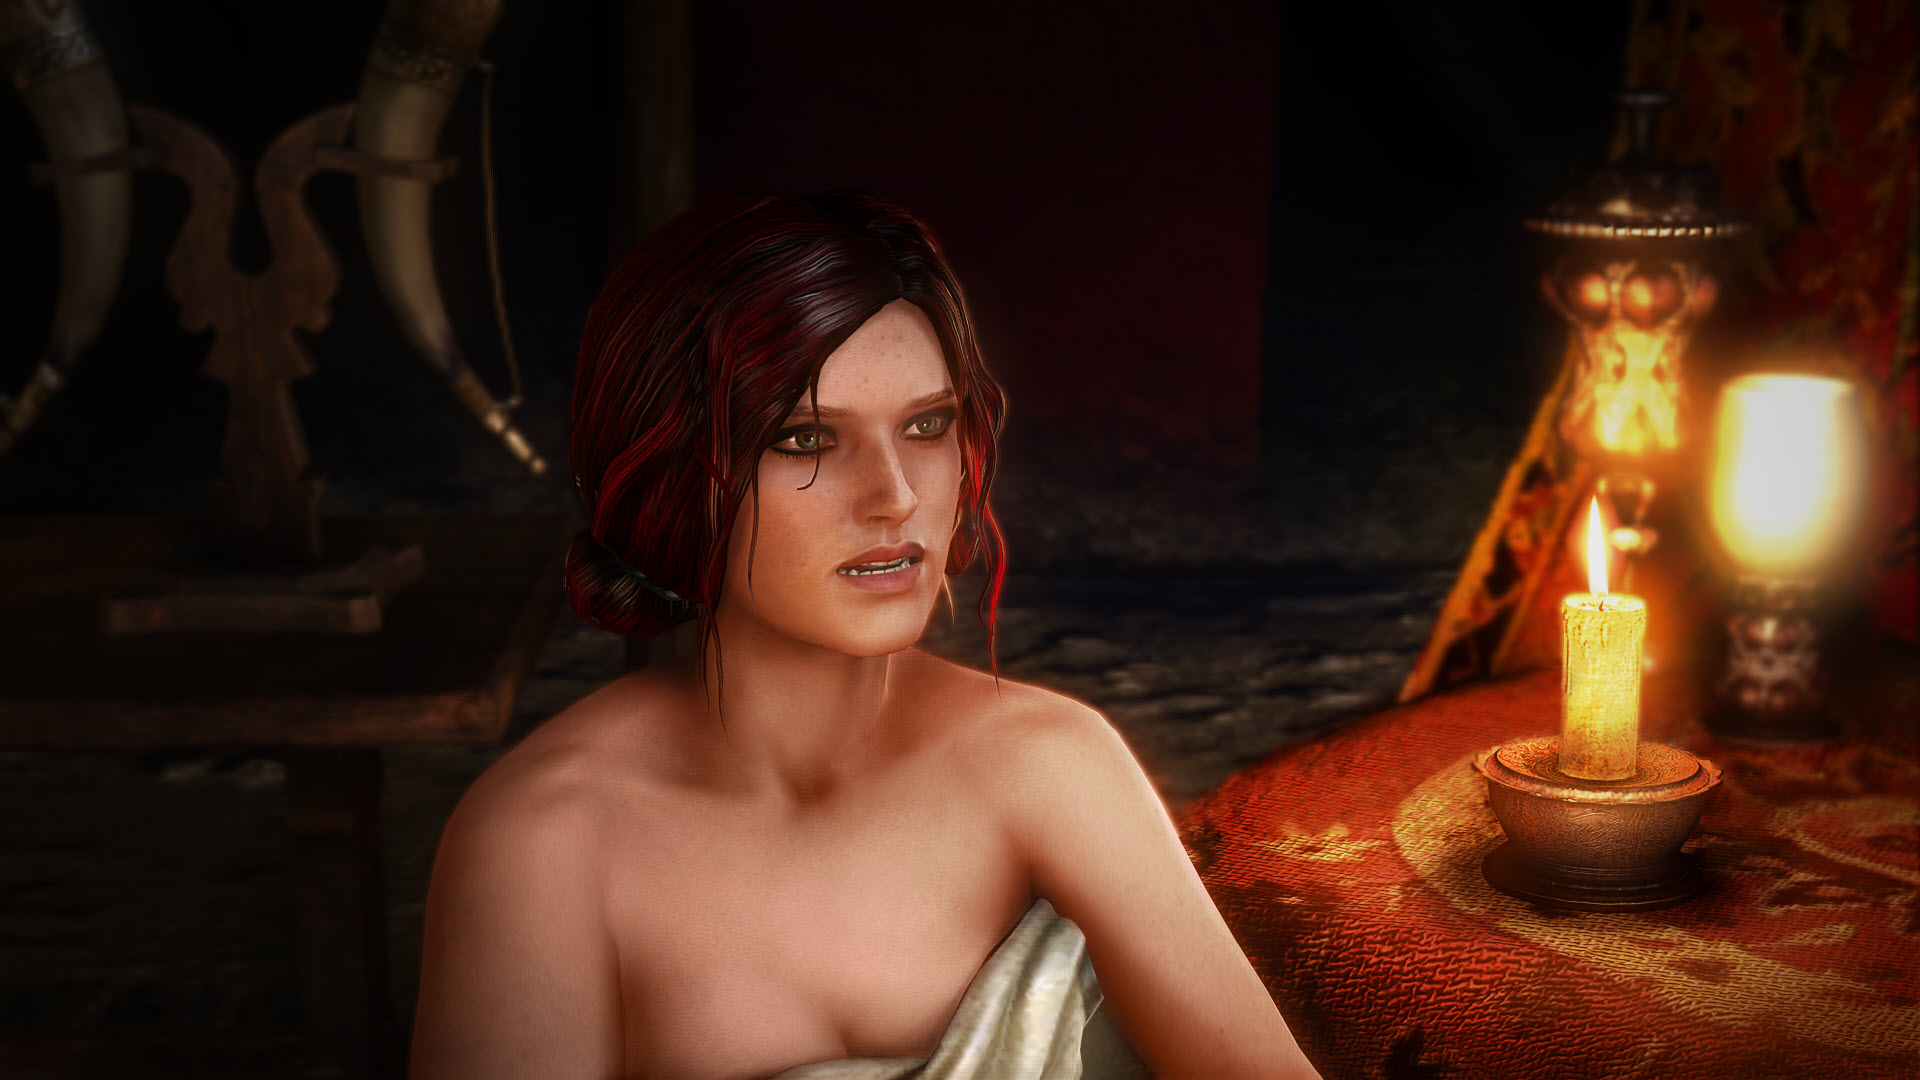 Witcher 2 nudity mod porn picture